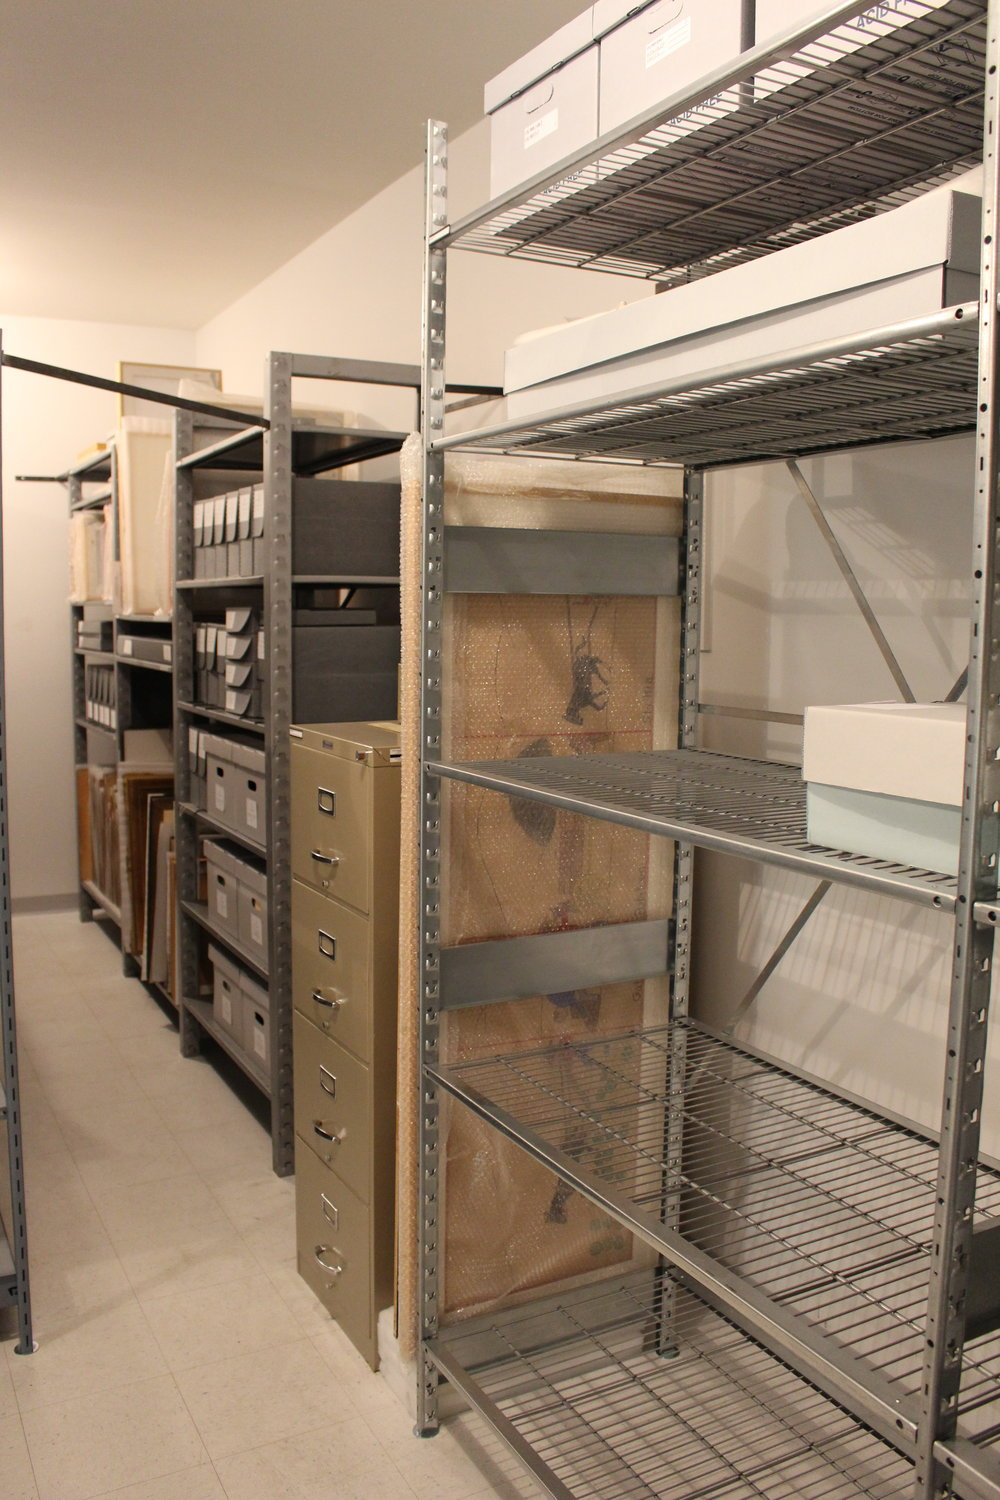 There's now no more acidic or chemically-damaging materials in the archives. We replaced wood shelves with metal ones, cardboard with acid-free archival storage, and even tested all of the tissue used to protect our photograph collection.